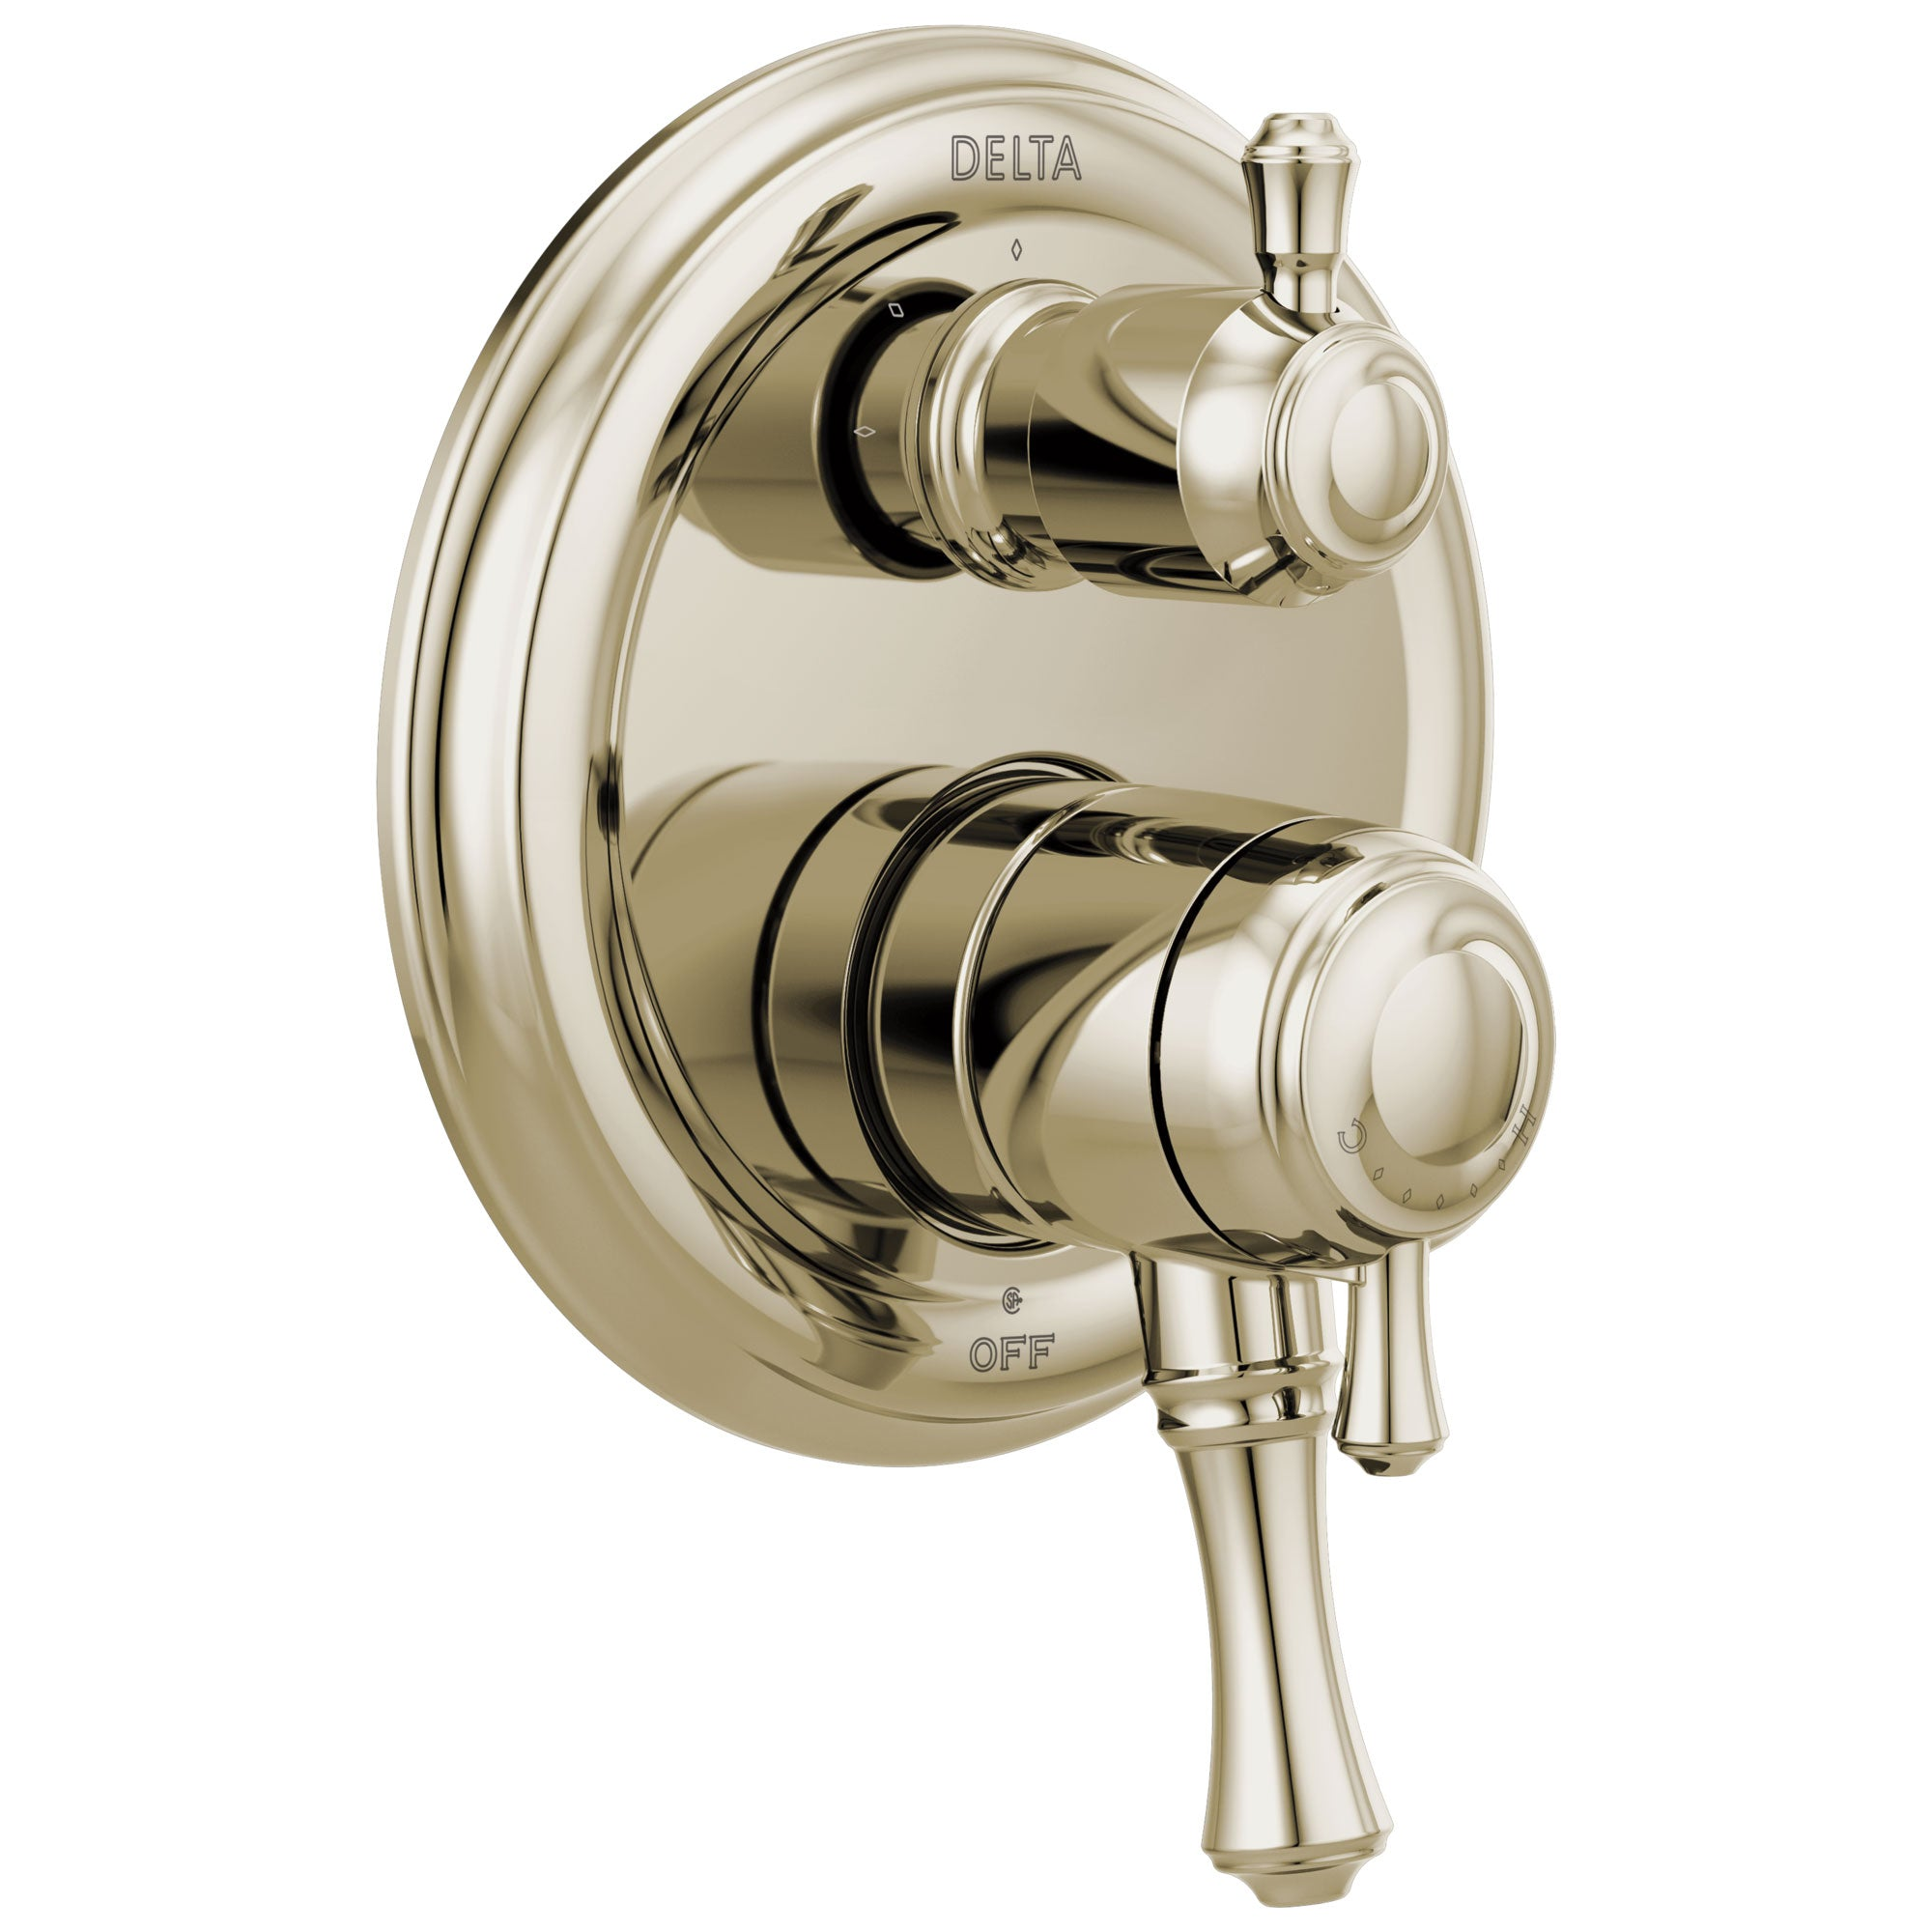 Delta Cassidy Polished Nickel Finish Traditional 17 Series Shower System Control with 3-Function Integrated Diverter Includes Valve and Handles D3721V